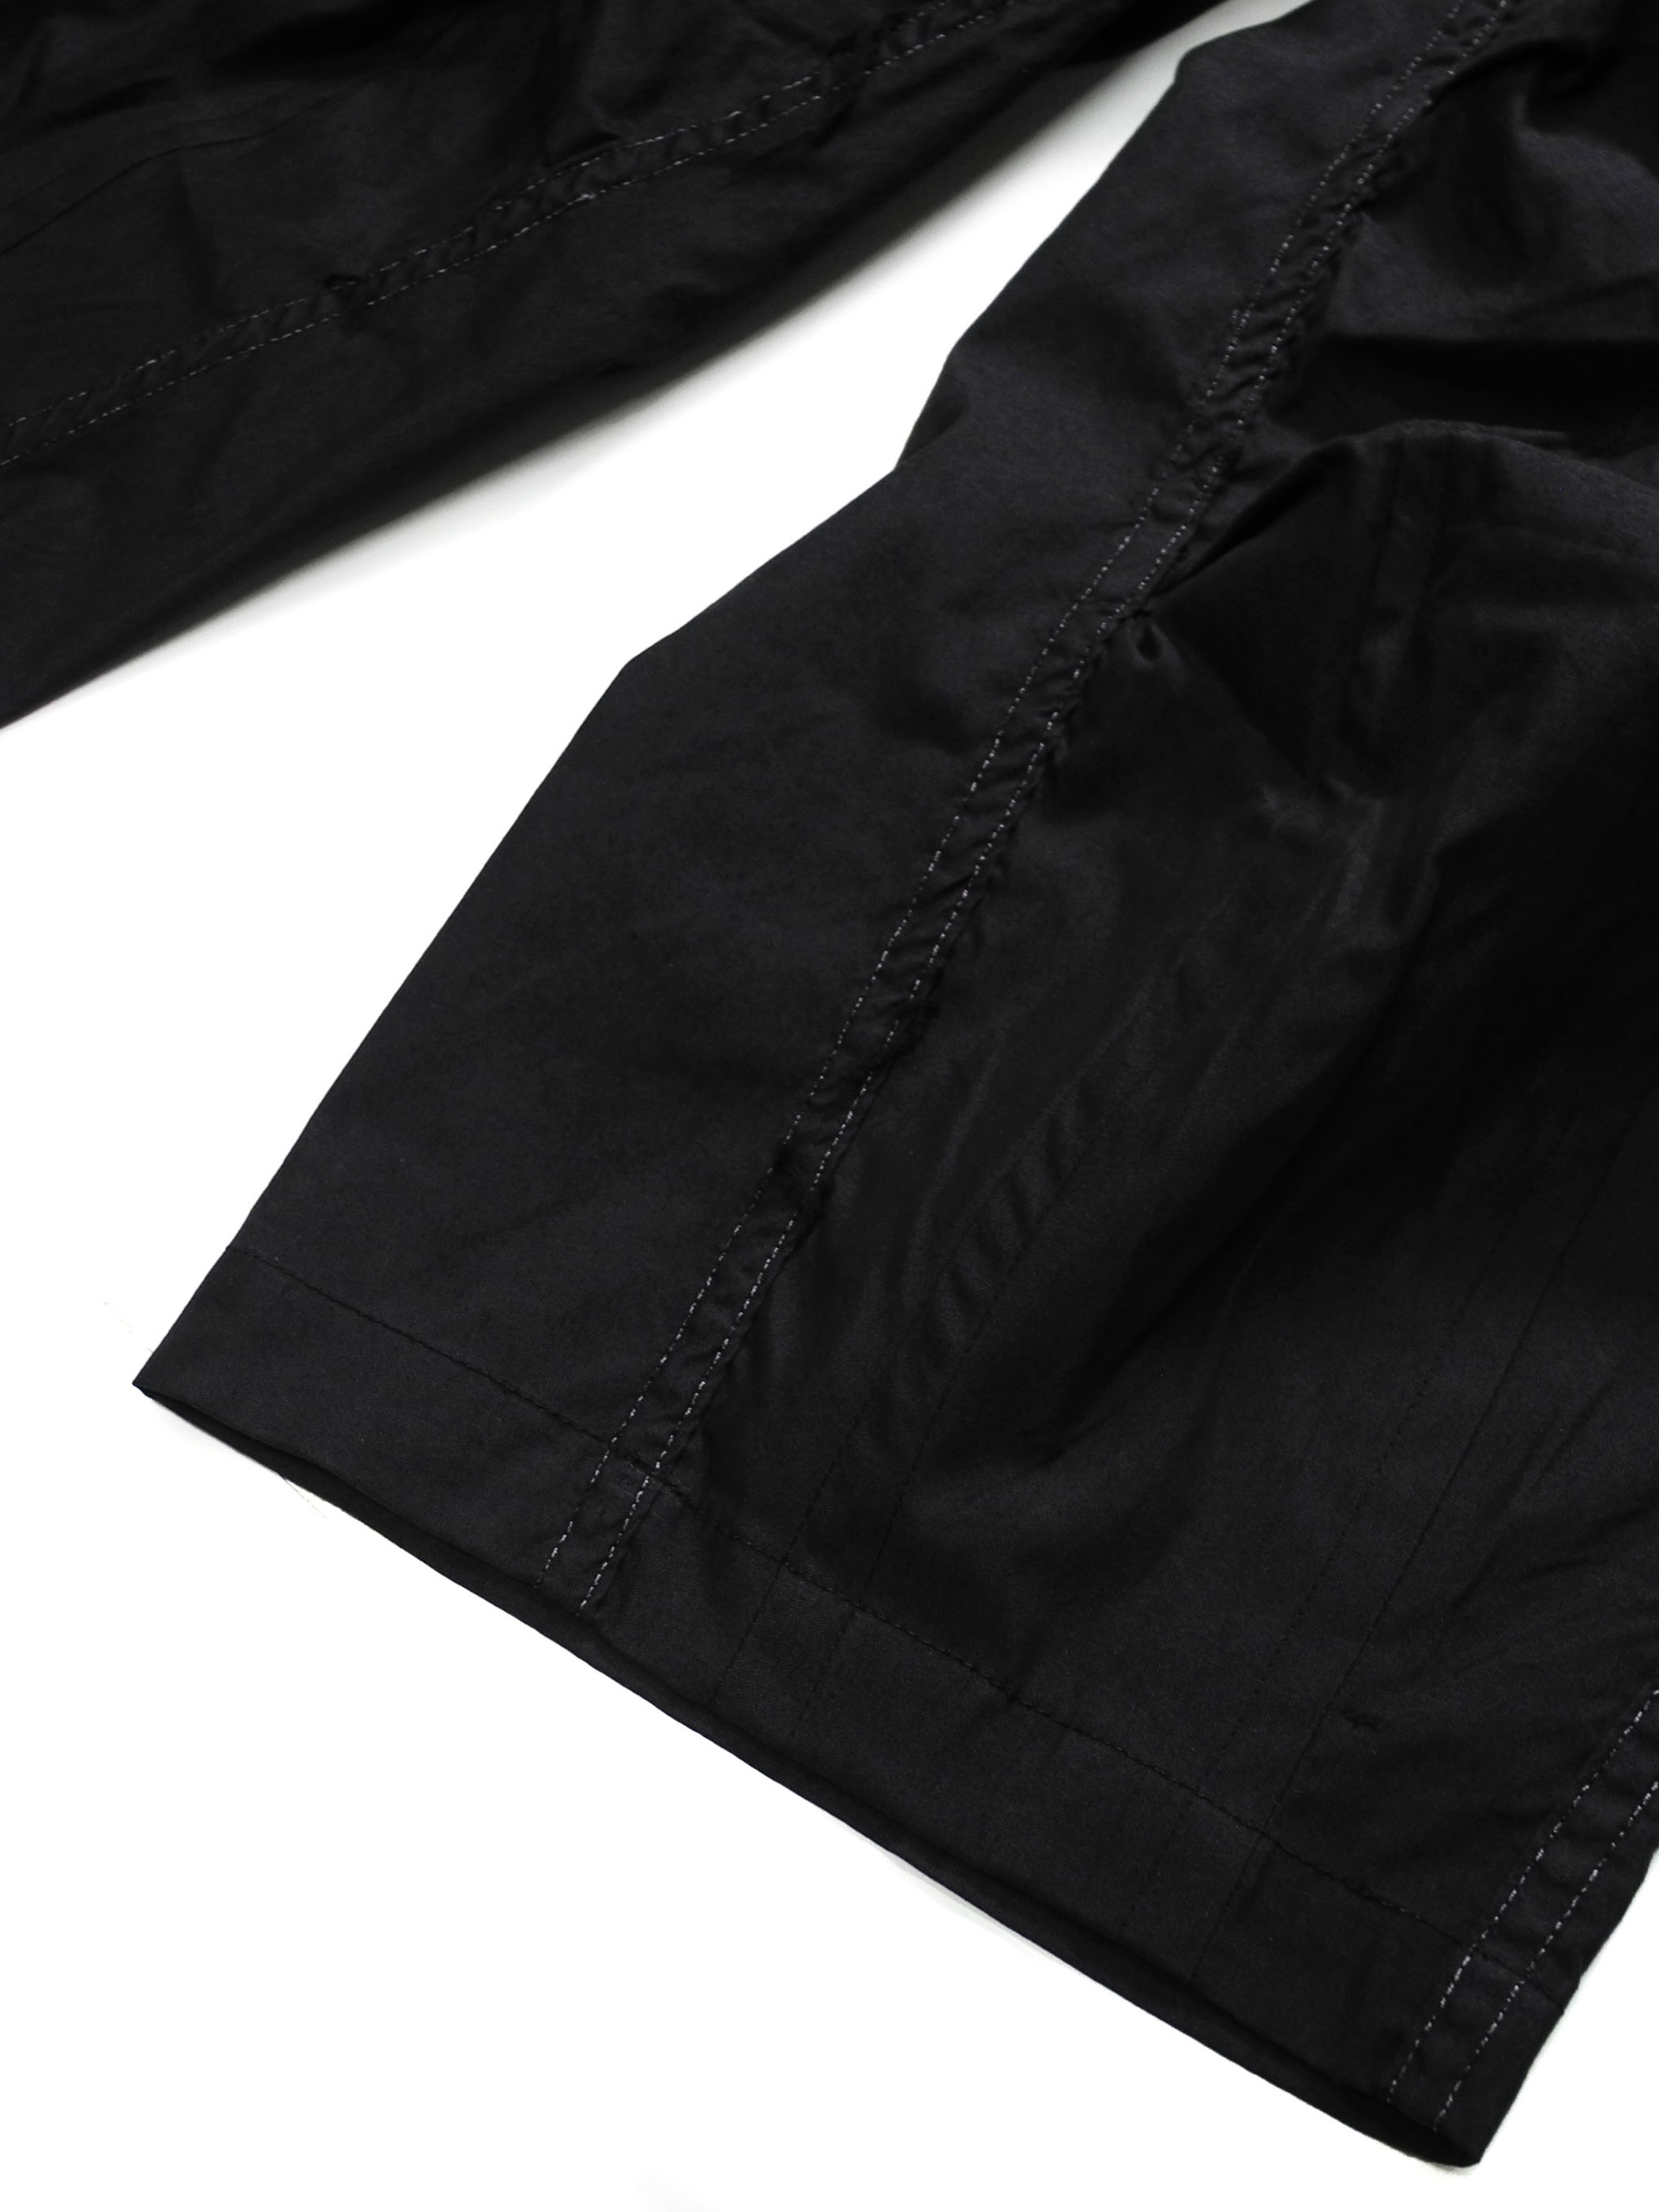 [REMAKE PRDUCTS] DEADSTOCK US ARMY SNOW CAMO PANTS CROPPED TAPERED DEEP BLACK